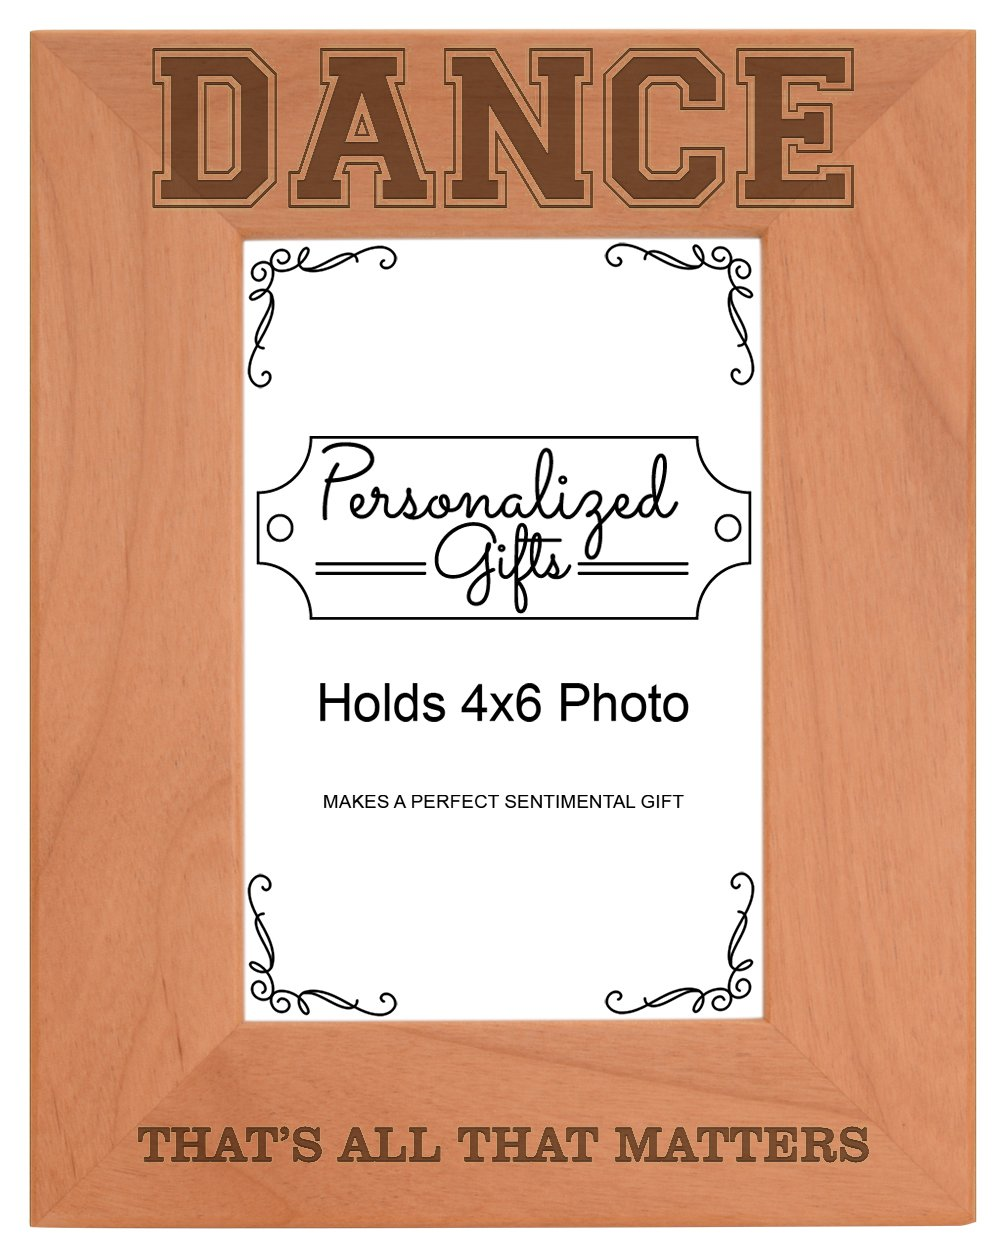 Personalized Gifts Dancer Gift Dancing Thats All That Matters Natural Wood Engraved 4x6 Portrait Picture Frame Wood